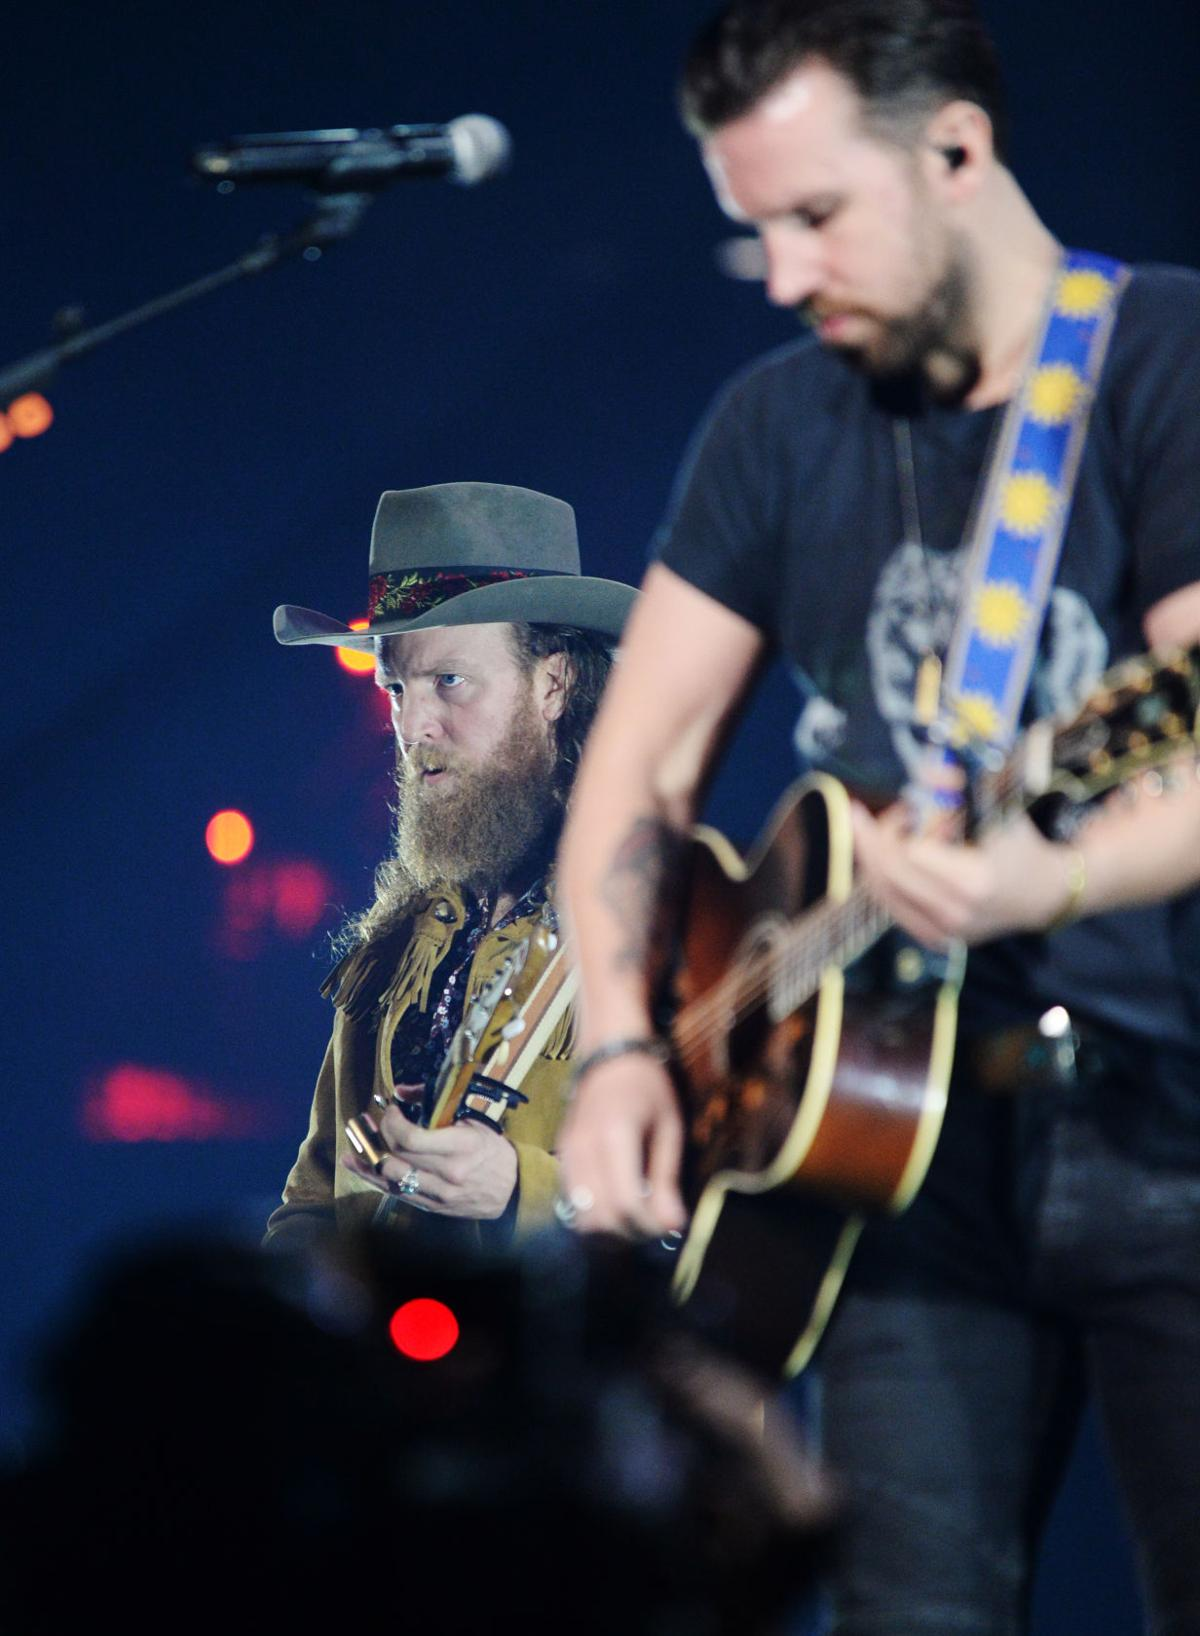 Luke bryan was his steady self the brothers osborne rattled the luke bryan was his steady self the brothers osborne rattled the walls at new orleans show keith spera theadvocate malvernweather Image collections